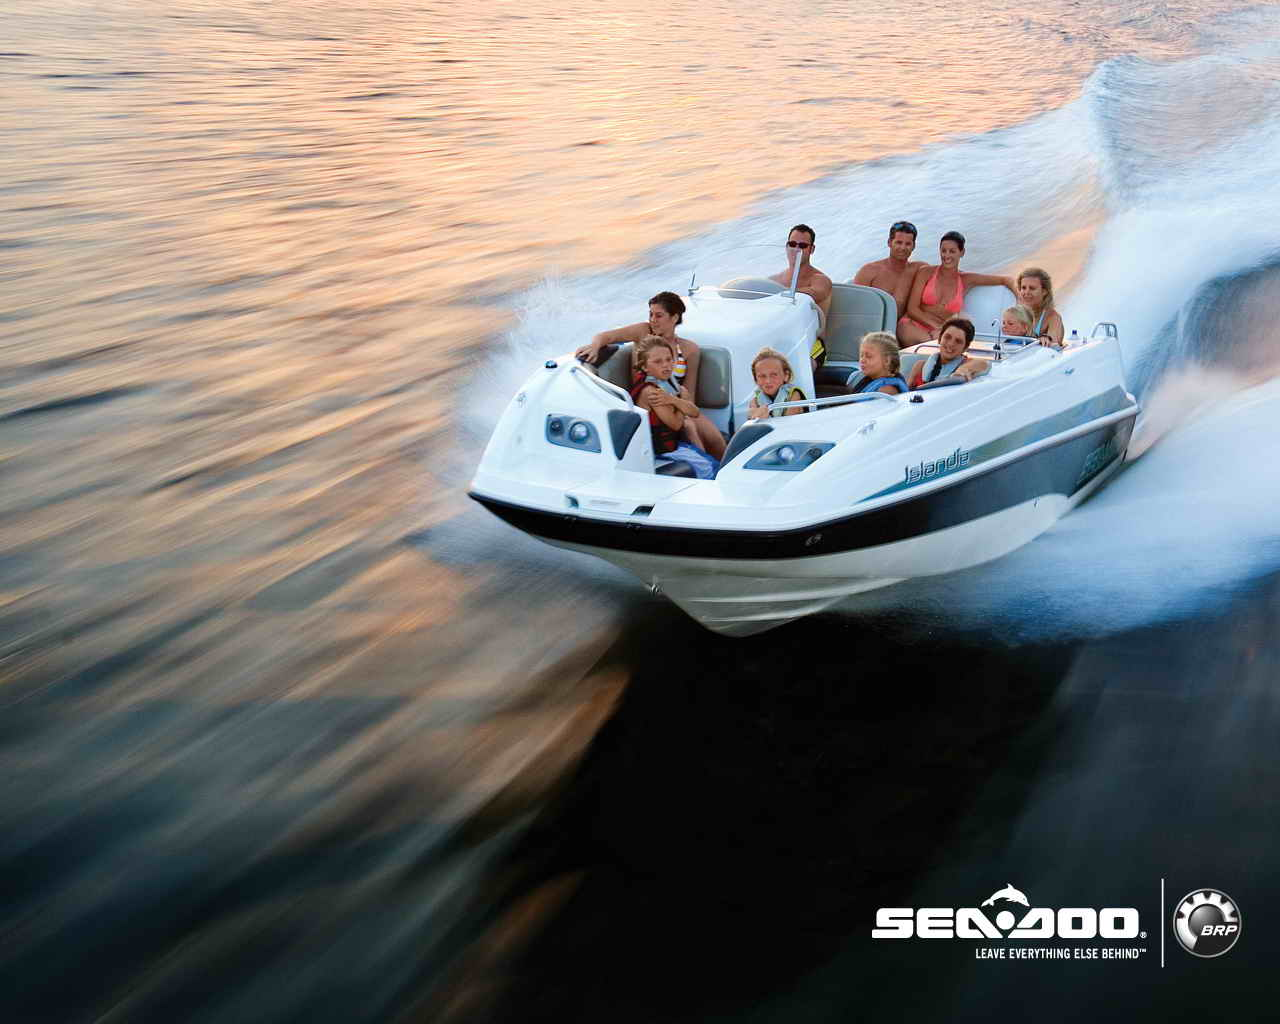 2007 sea doo islandia se top speed rh topspeed com Sea-Doo Attachments Sea-Doo Islandia Boats